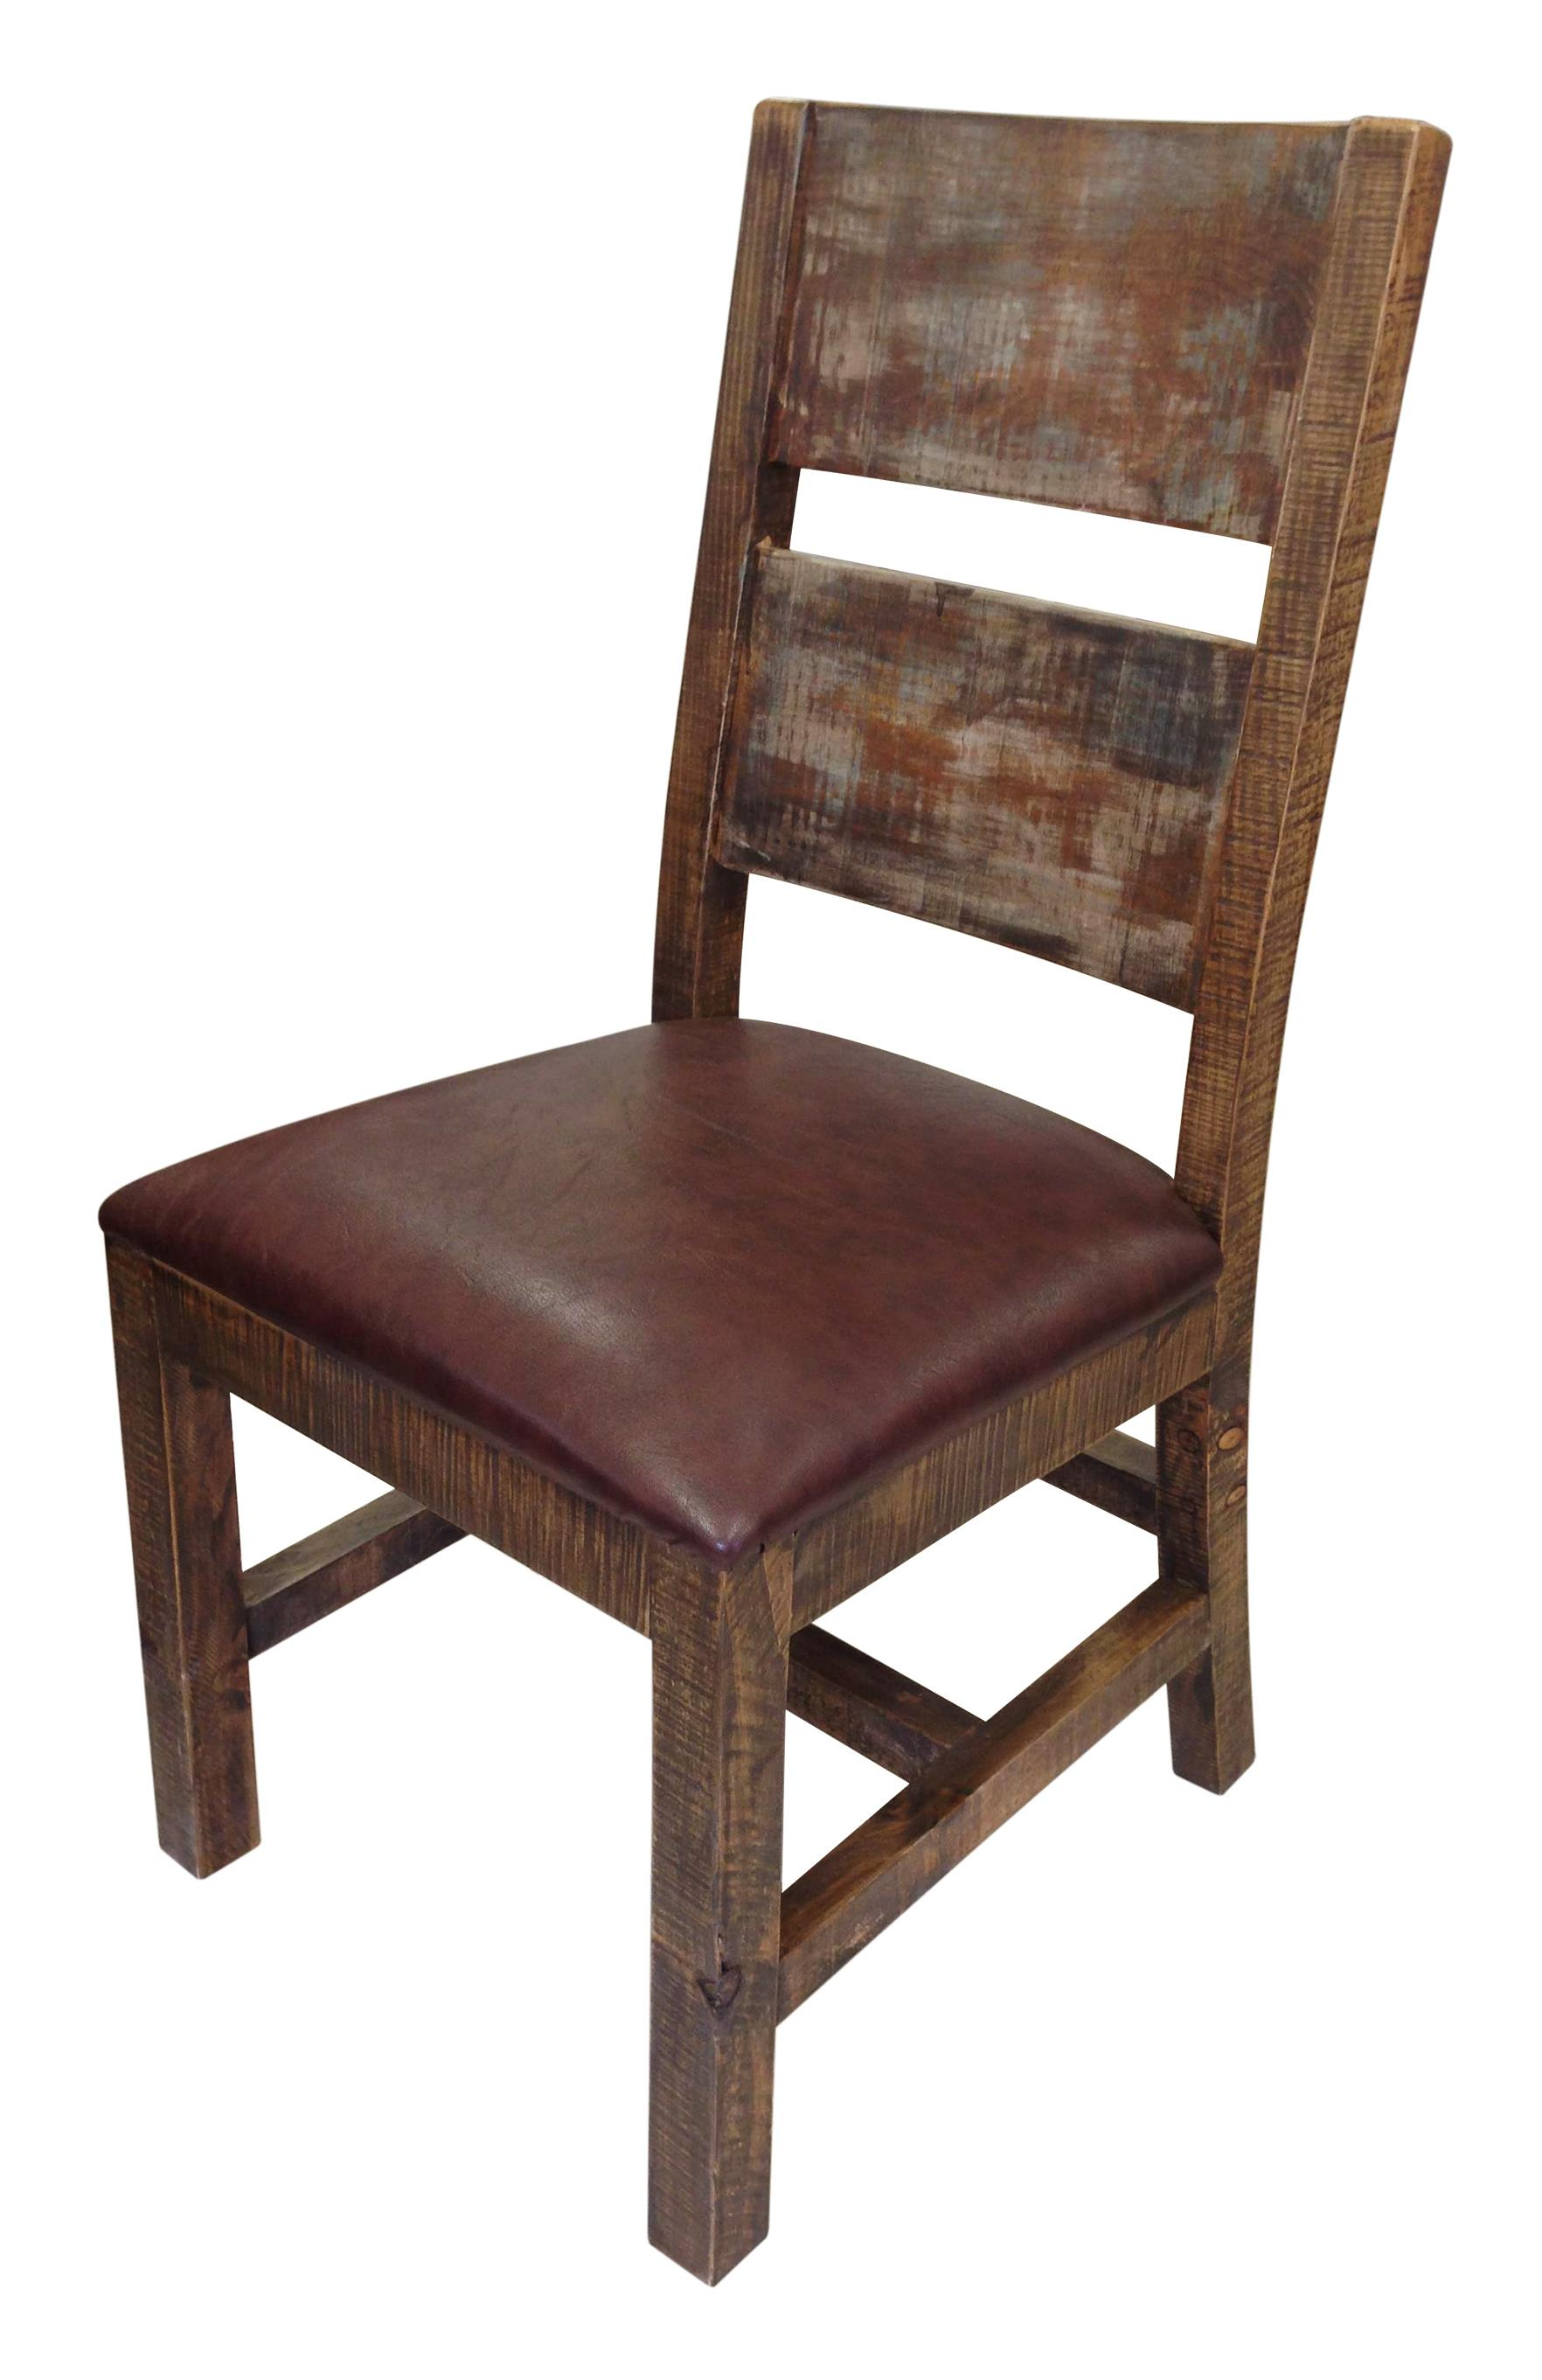 Leather And Wood Chair 900 Antique Solid Wood Chair With Bonded Leather Seat By International Furniture Direct At Dunk Bright Furniture